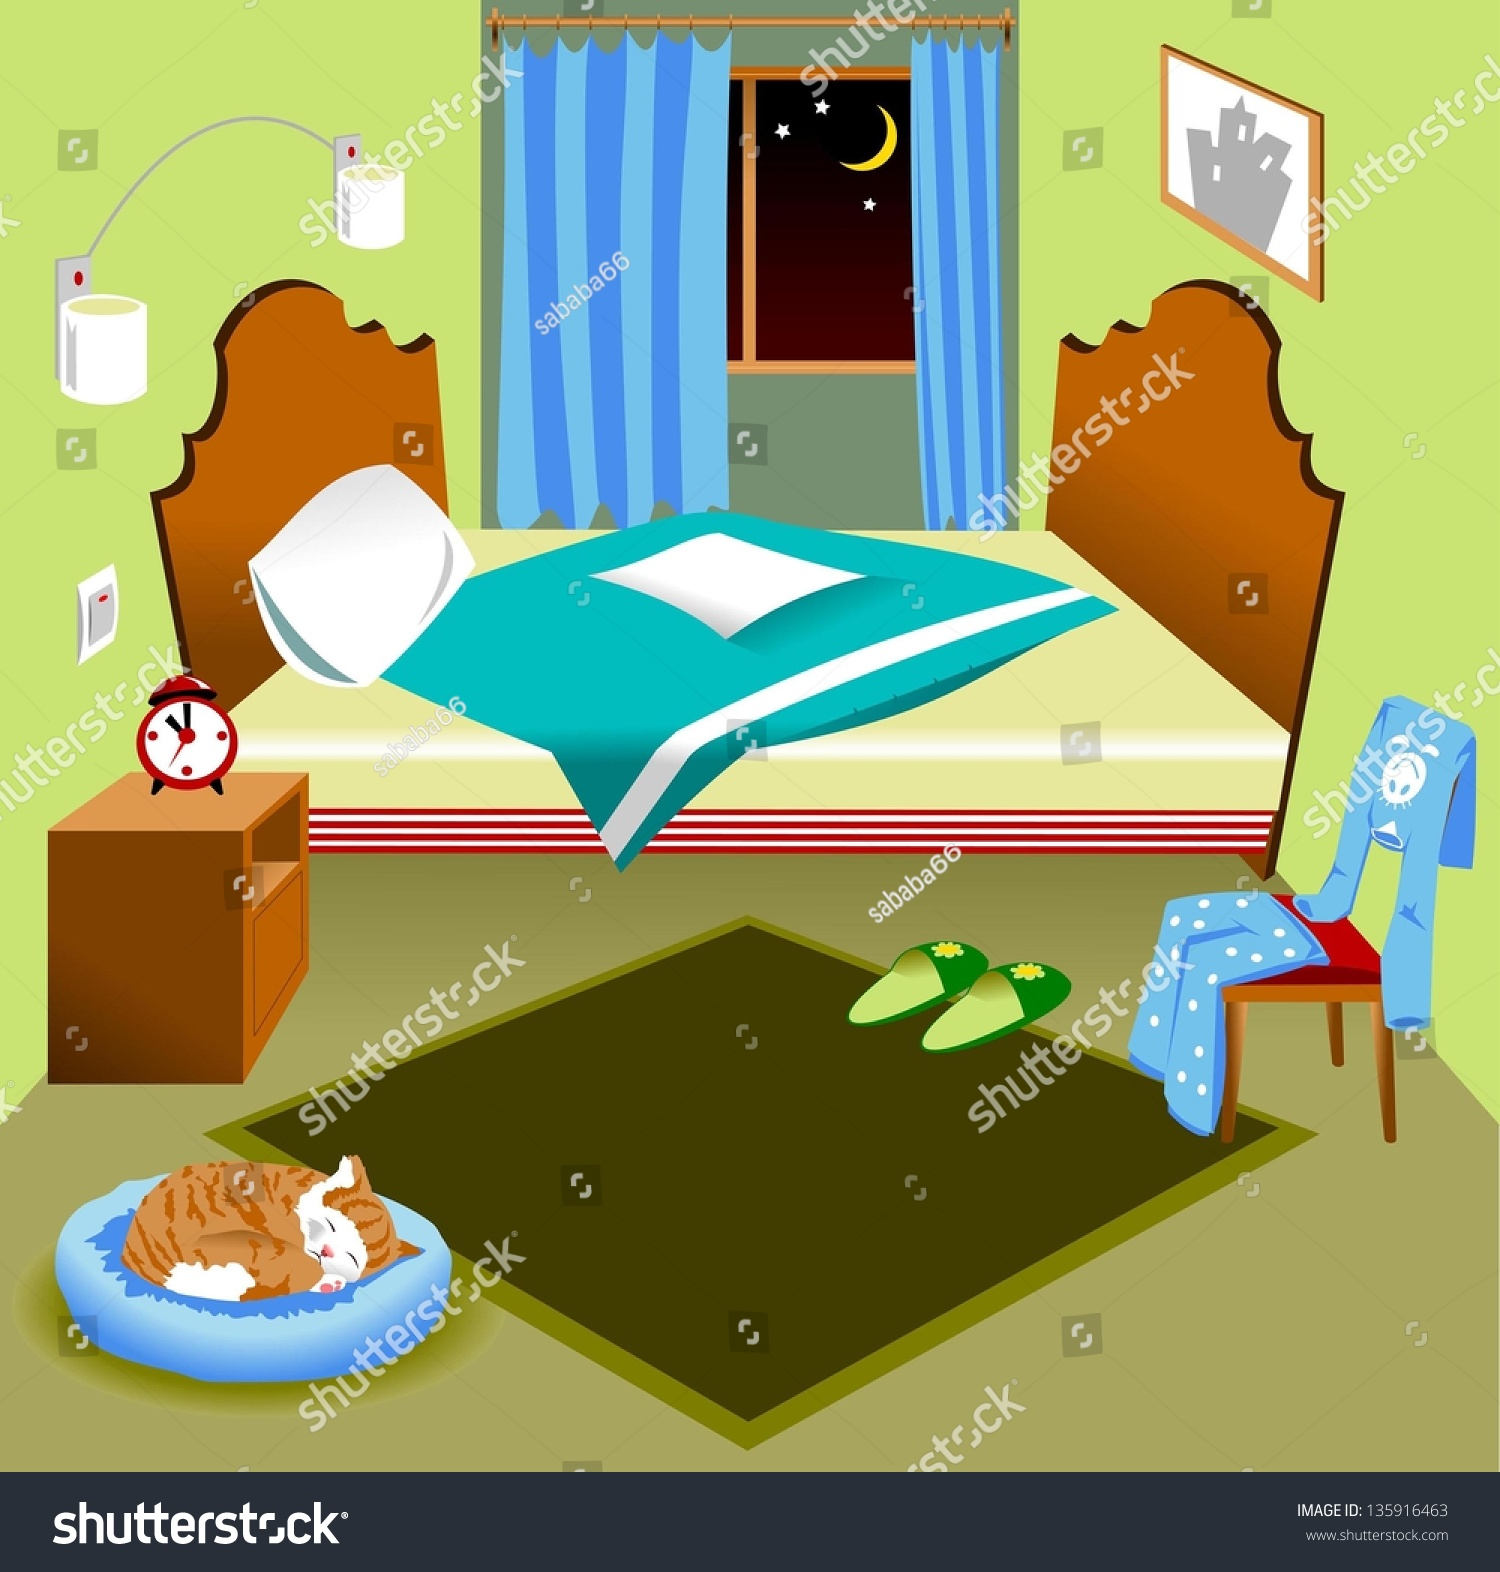 Interior Of A Bedroom With A Bed And A Window The Night Illustration